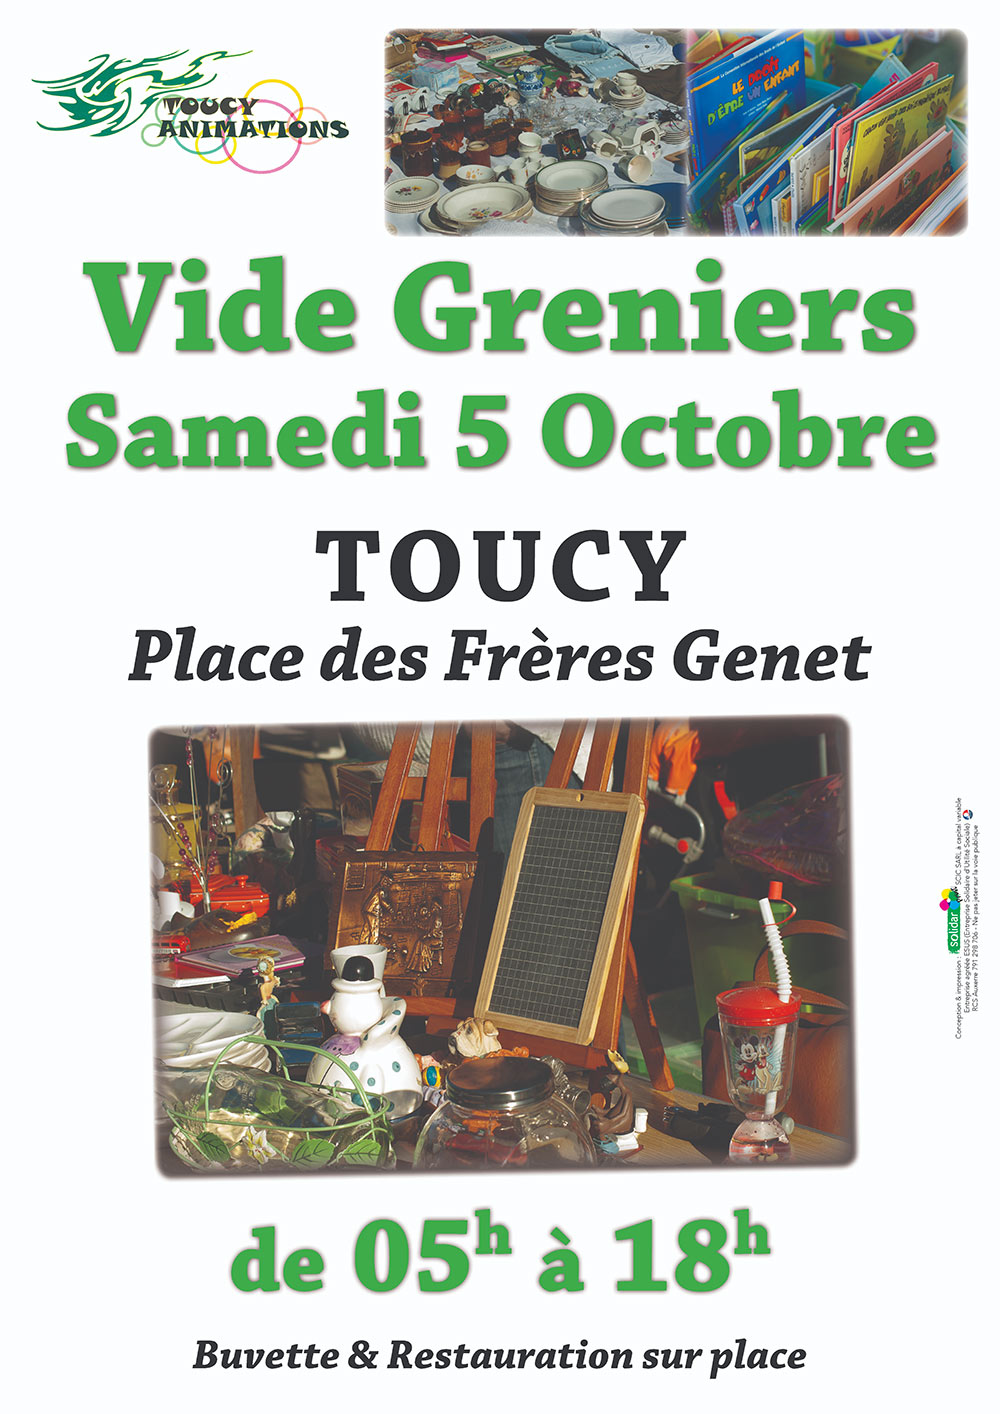 Image Vide-greniers Toucy